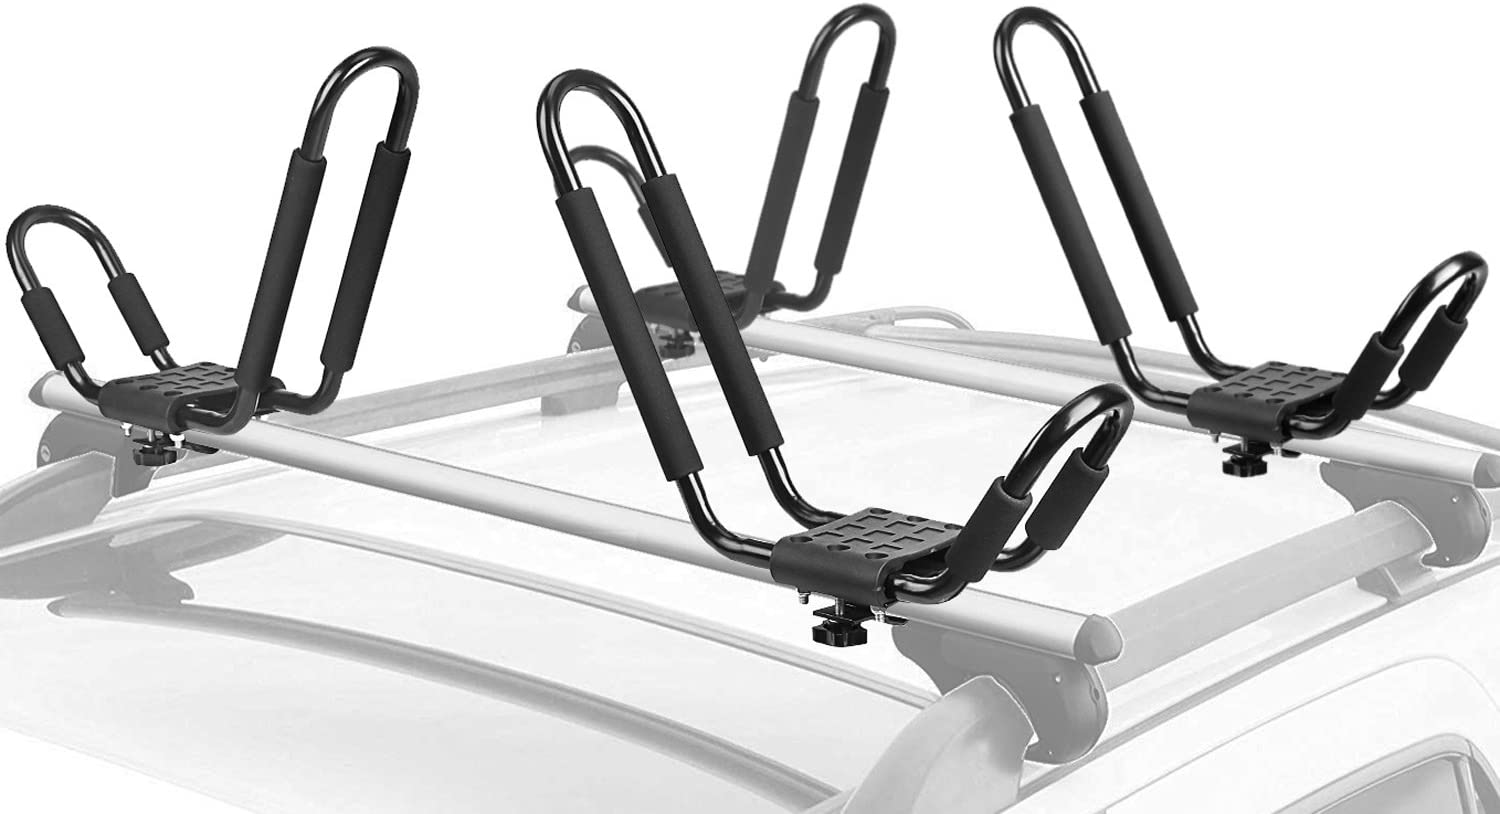 4PCS Heavy Duty Shape Bars Canoe Kayak Carrier Car Roof Rack With Straps